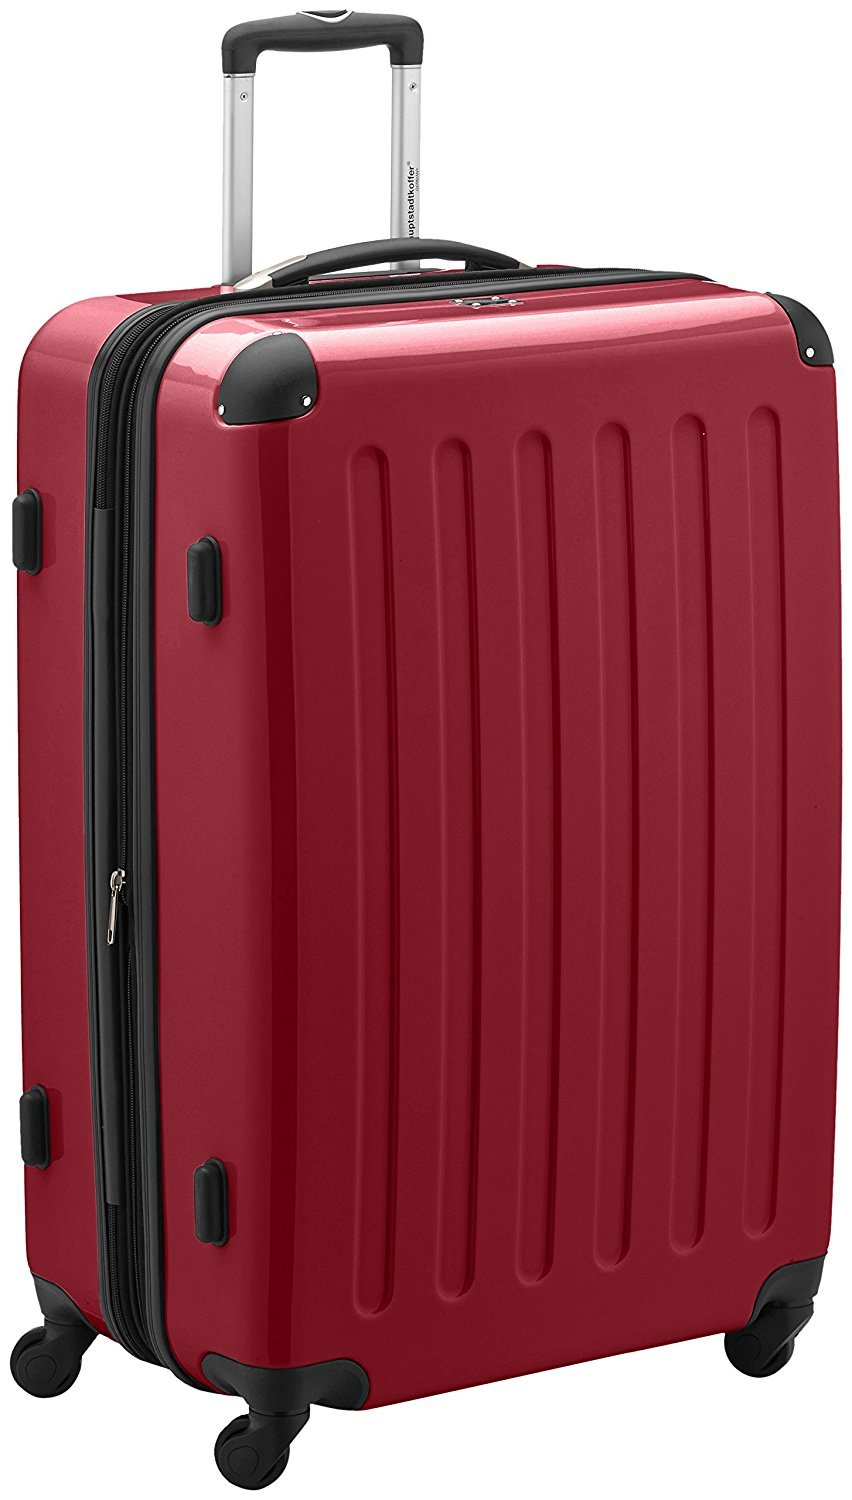 Hard Sided Suitcase